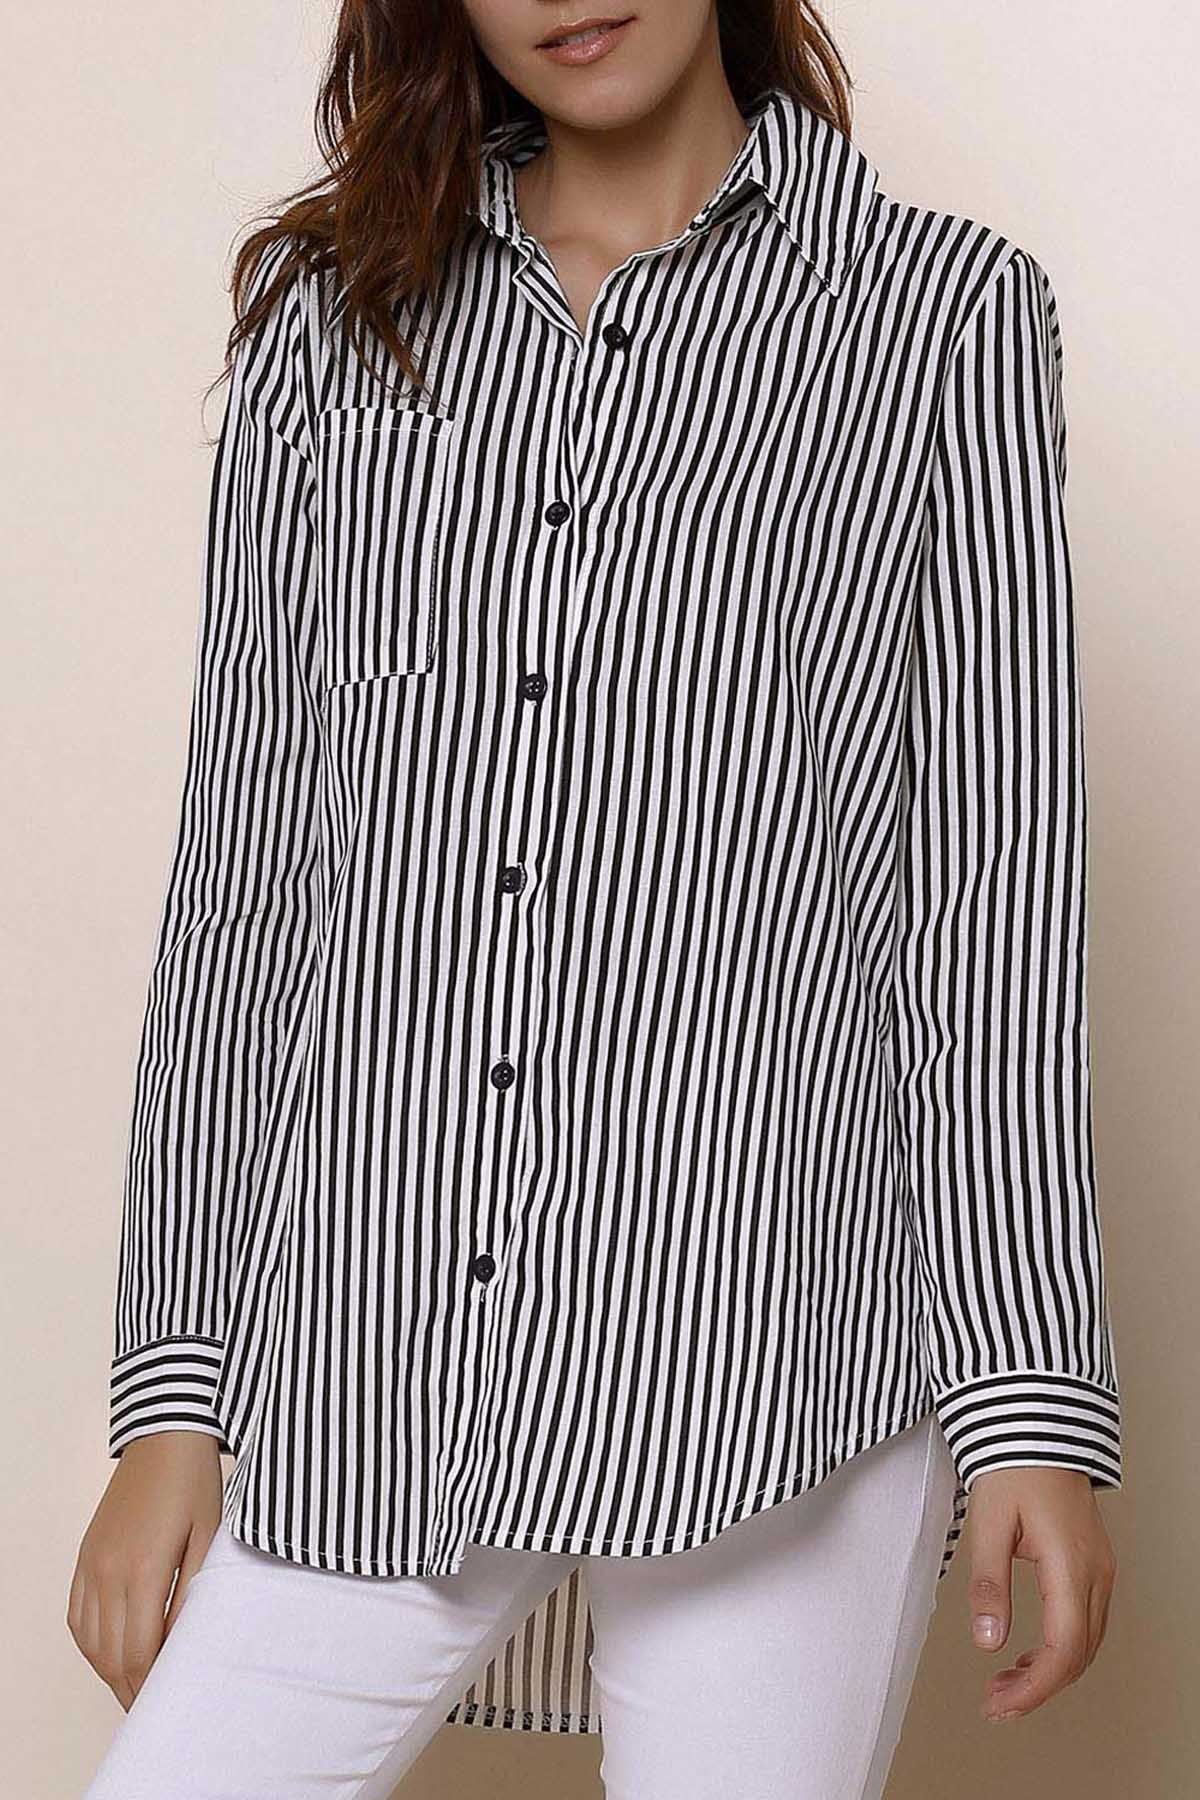 Long Sleeve Button Up Striped Shirt - BLACK S